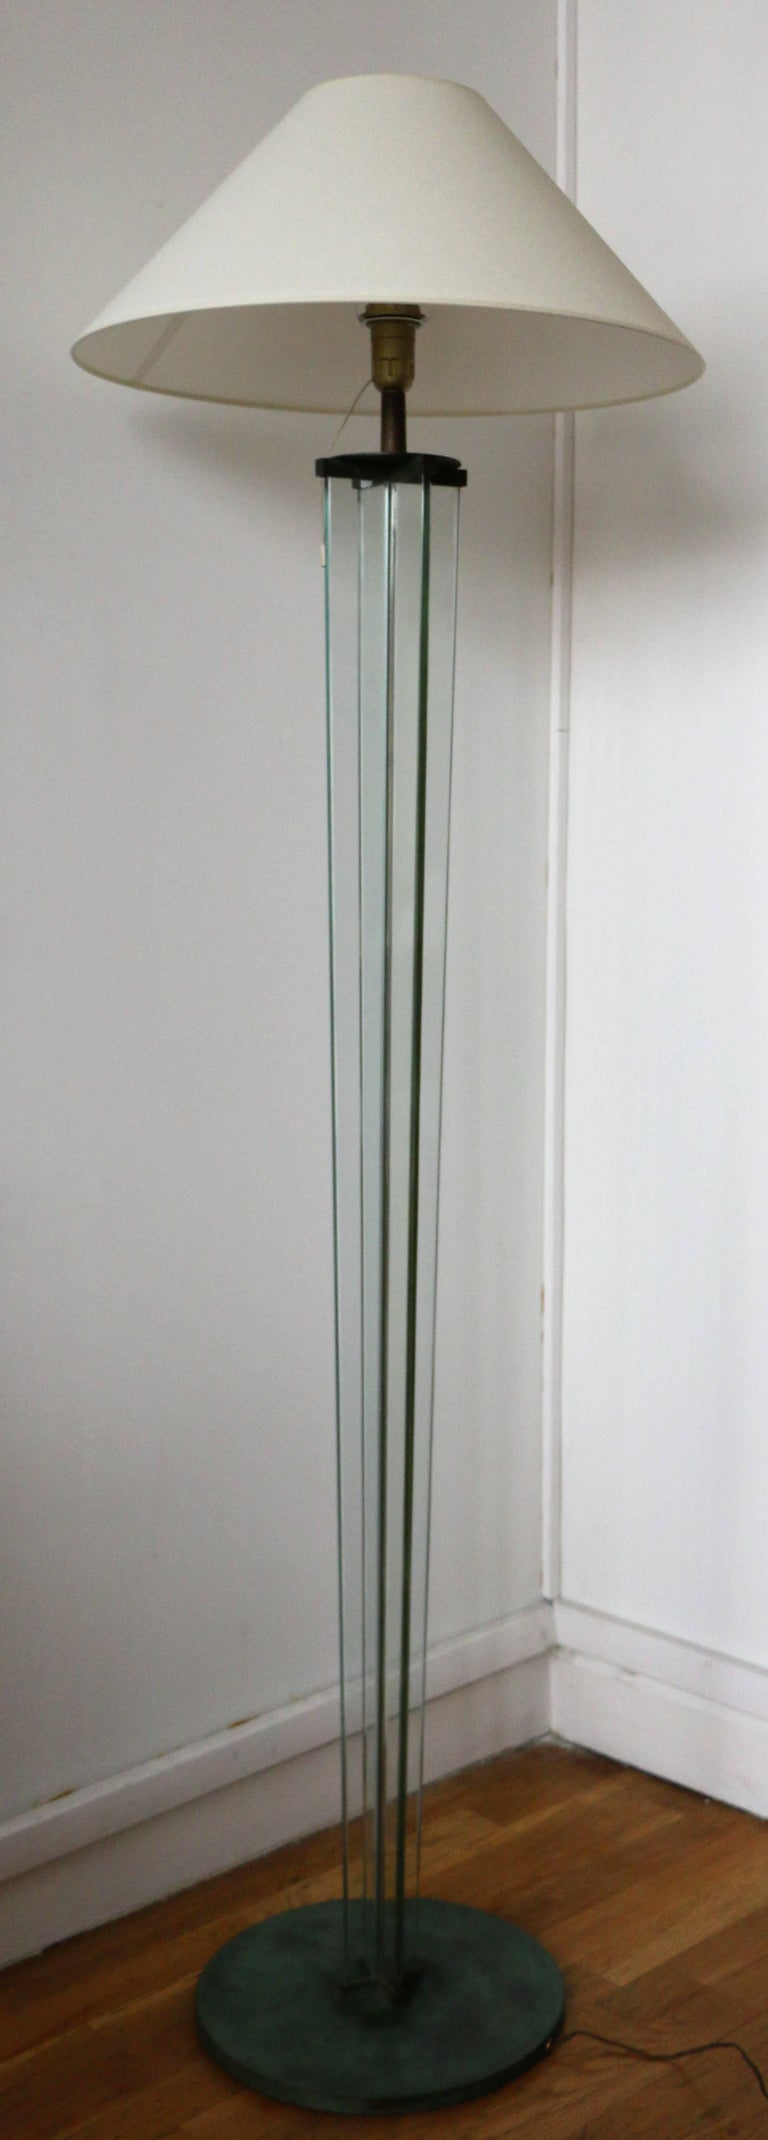 Stunning floor lamp by Jacques Adnet (1900-1984). It has a cross shape and is made of 4 glass panels sitting on an oxidized circular metal base. France, 1930s. Dimensions: height (excl shade): 158cm, base (diameter): 35cm Electrified for European